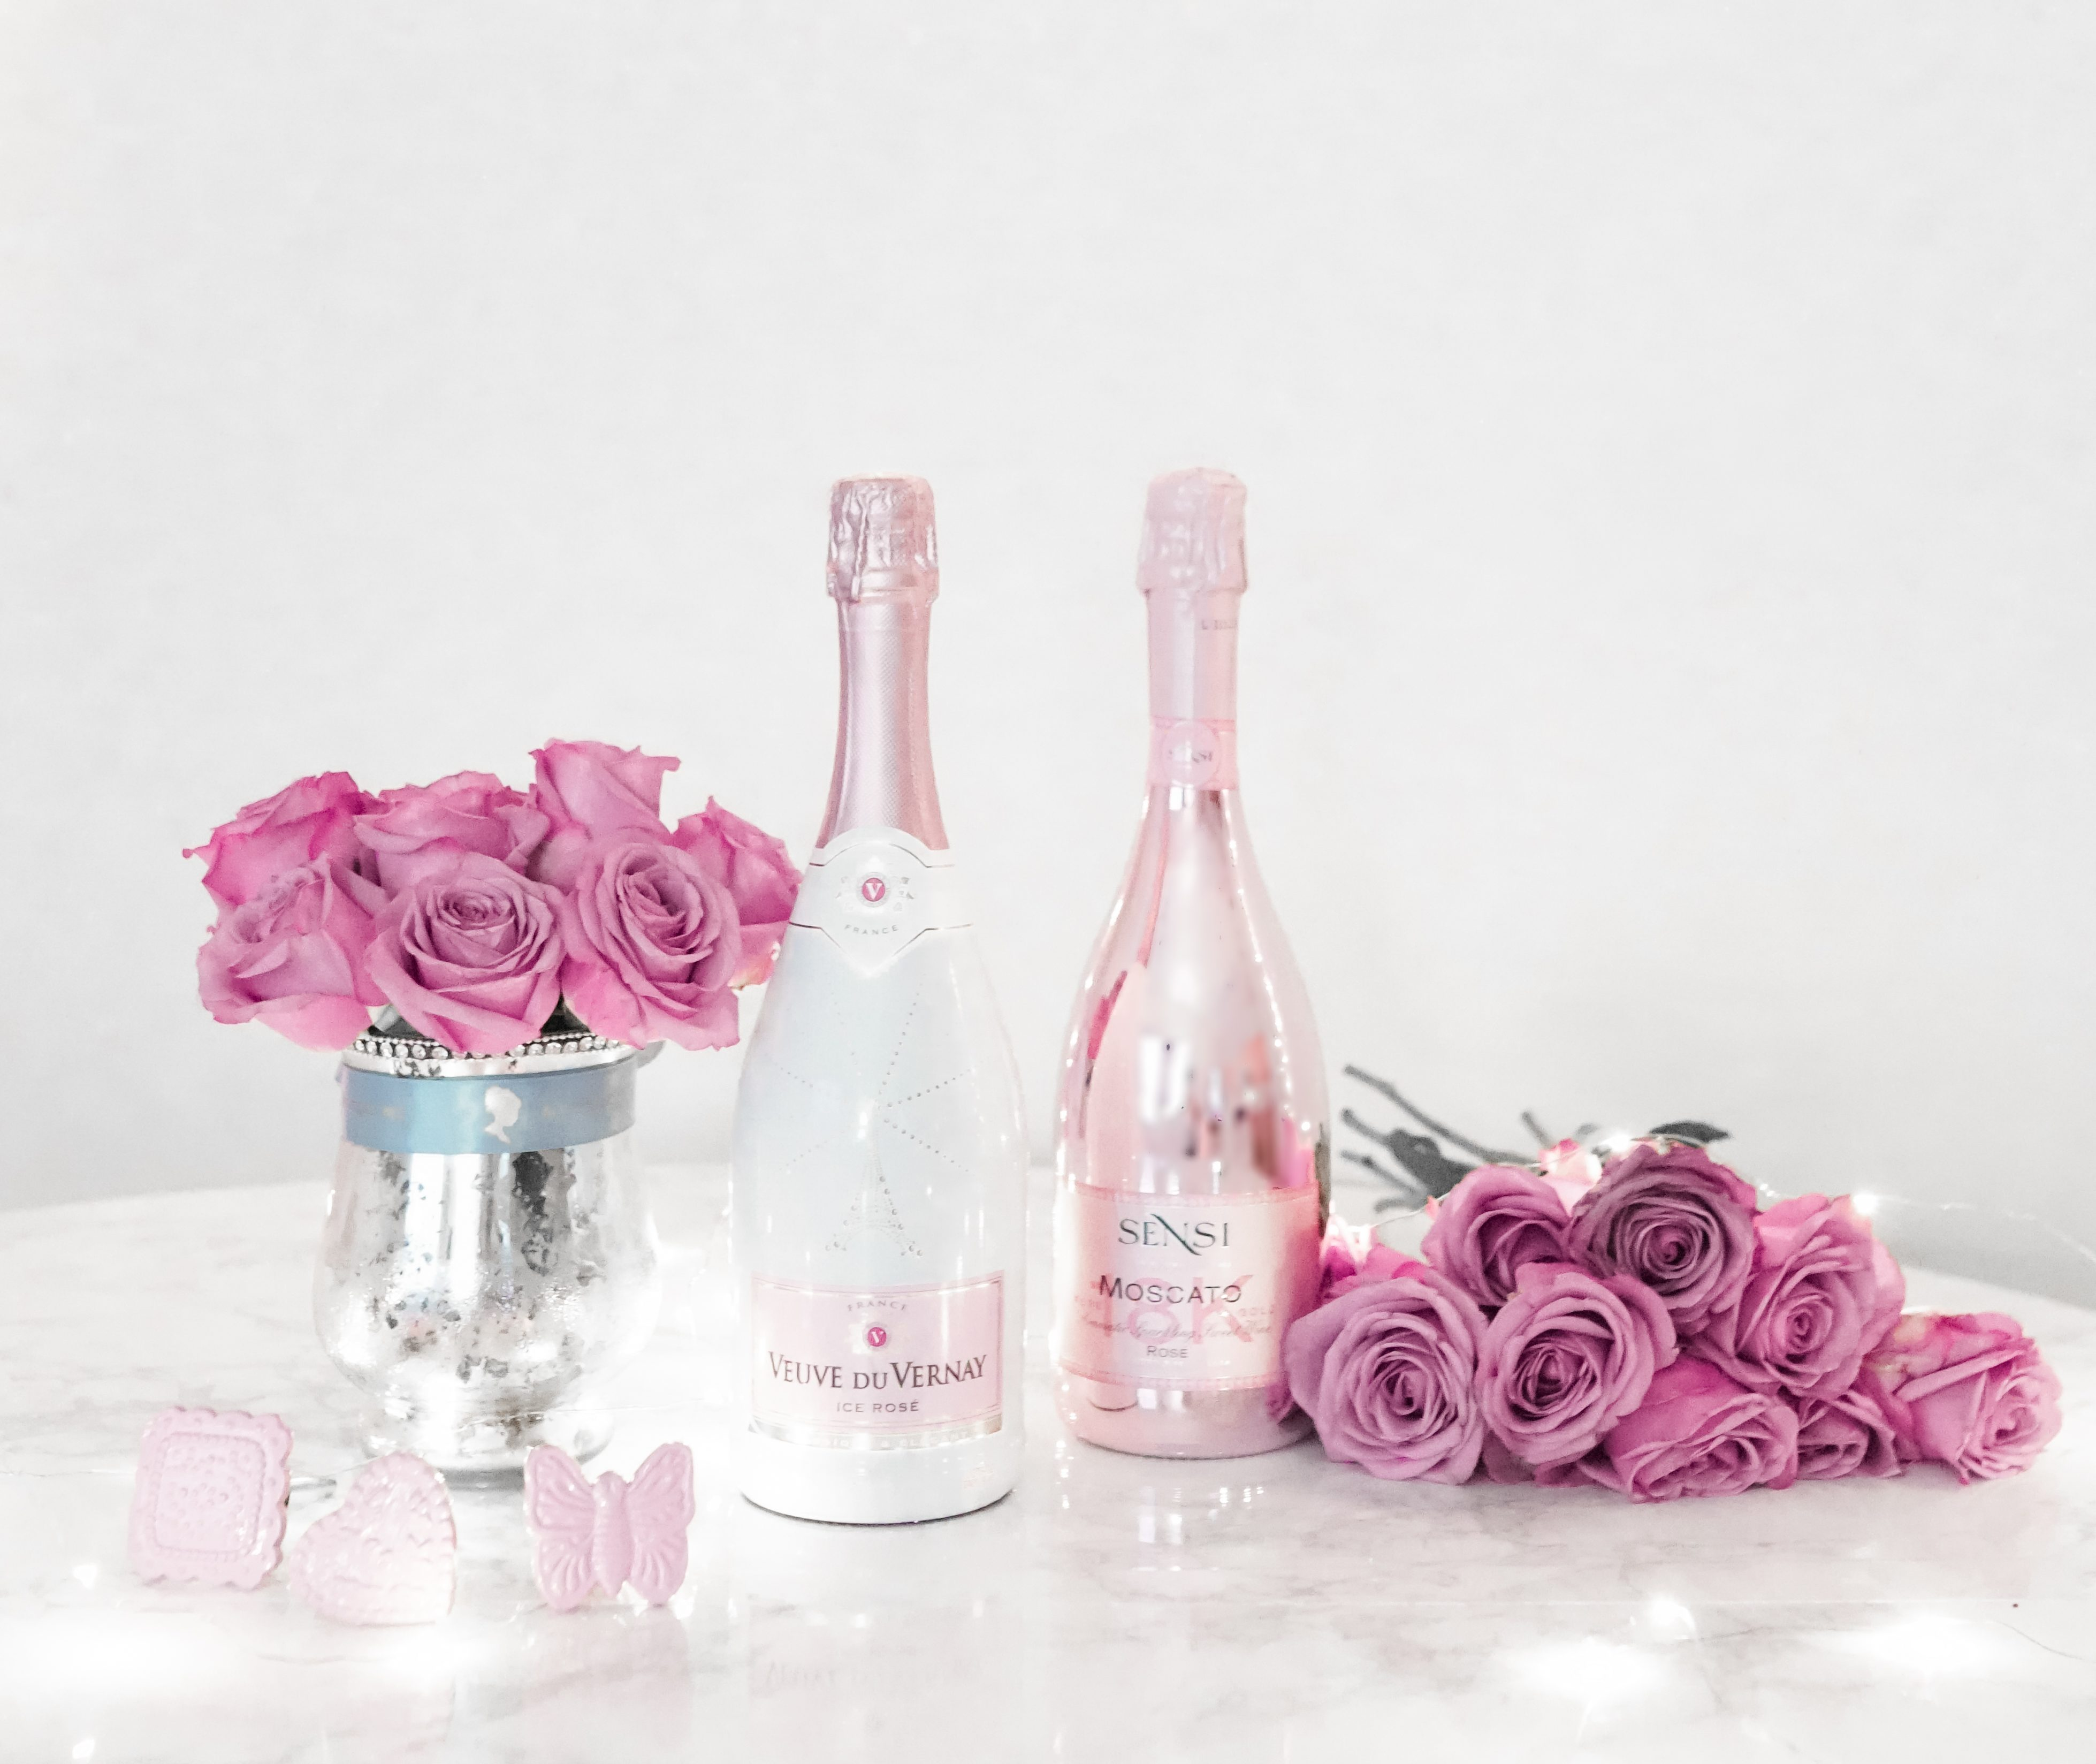 Fabulous Feminine Home Decor Pieces For Shopping On A Budget